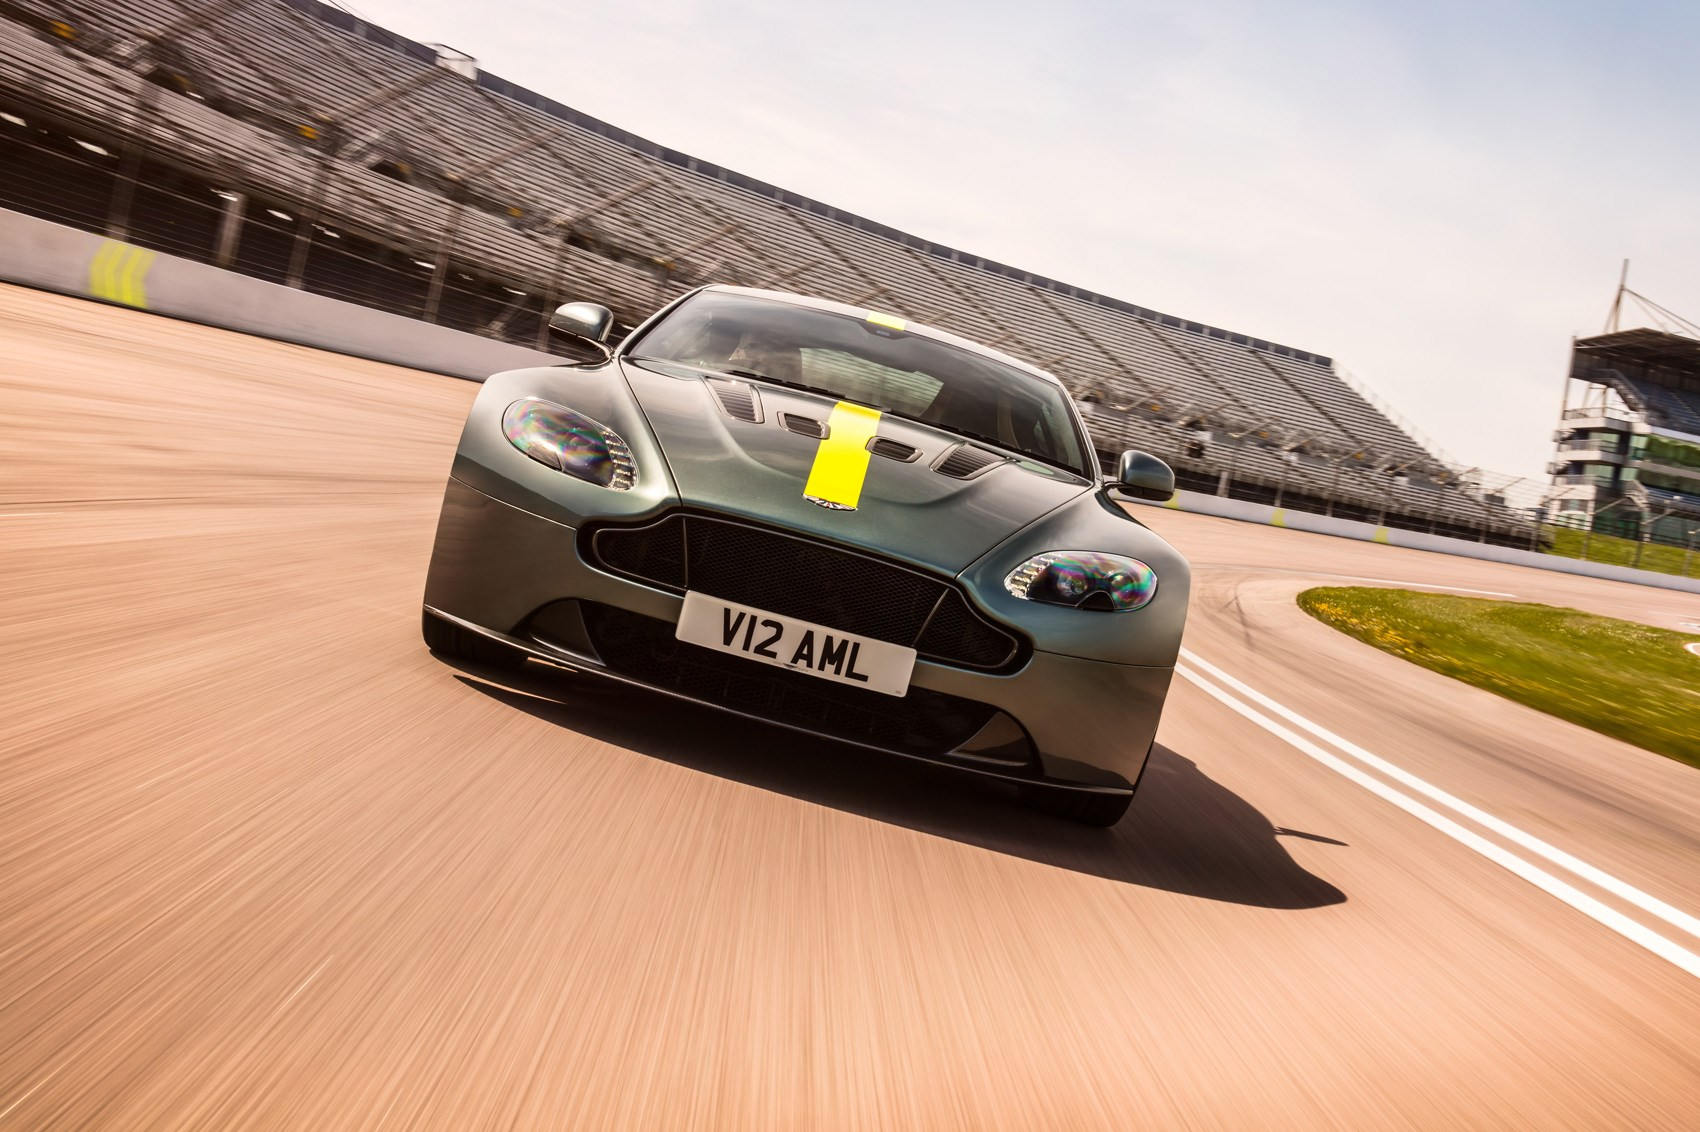 Aston Martin Vantage AMR is last hurrah for current-gen model